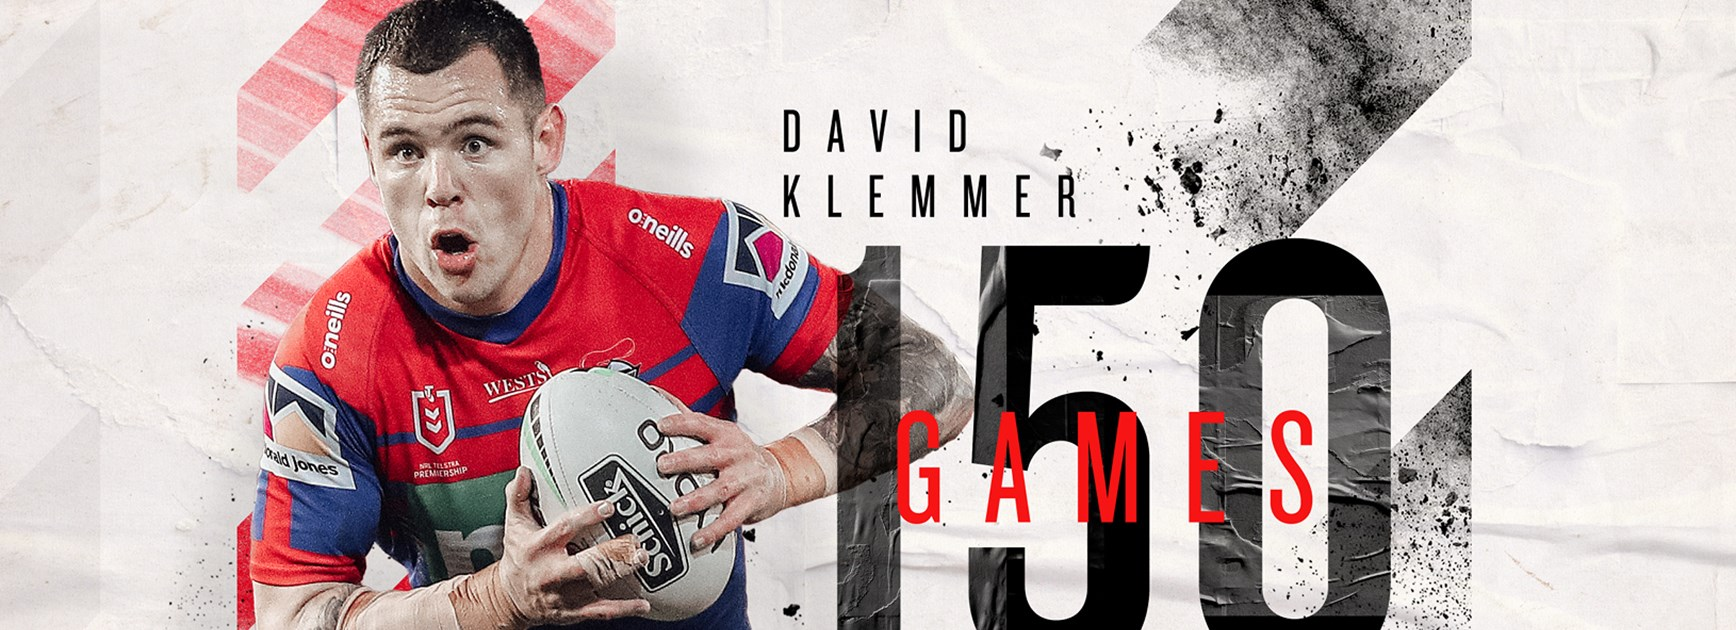 David Klemmer's road to game 150